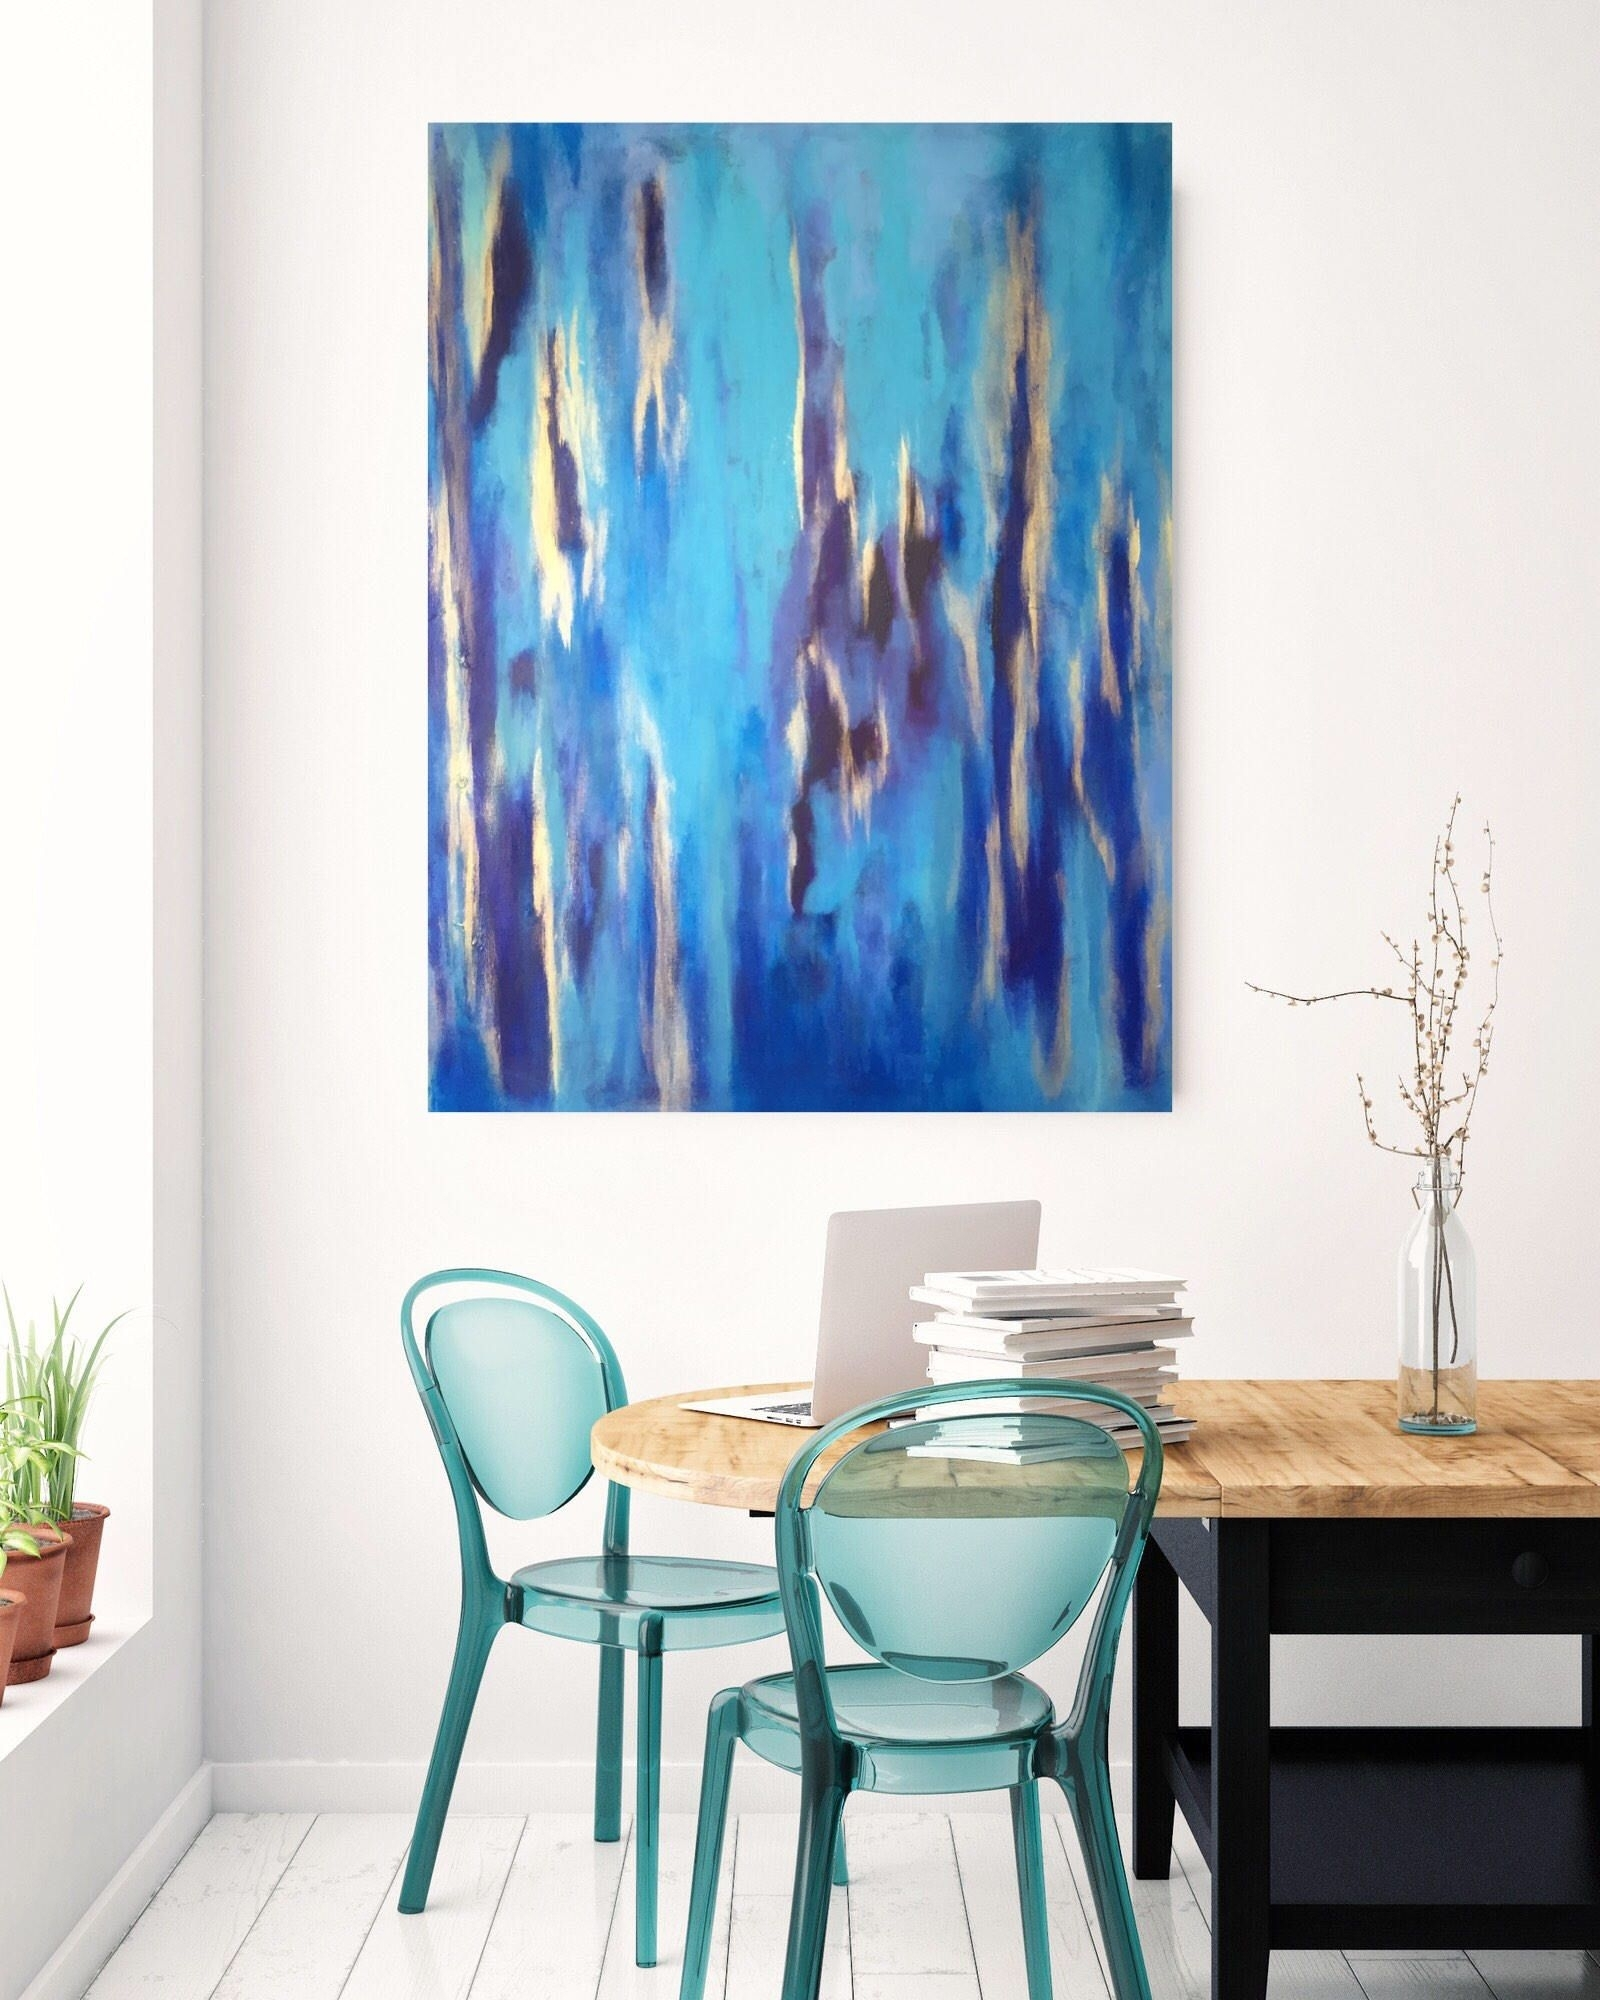 Large Wall Art,acrylic Blue Painting, Abstract Art Gold, Coastal For Most Recent Large Coastal Wall Art (View 18 of 20)